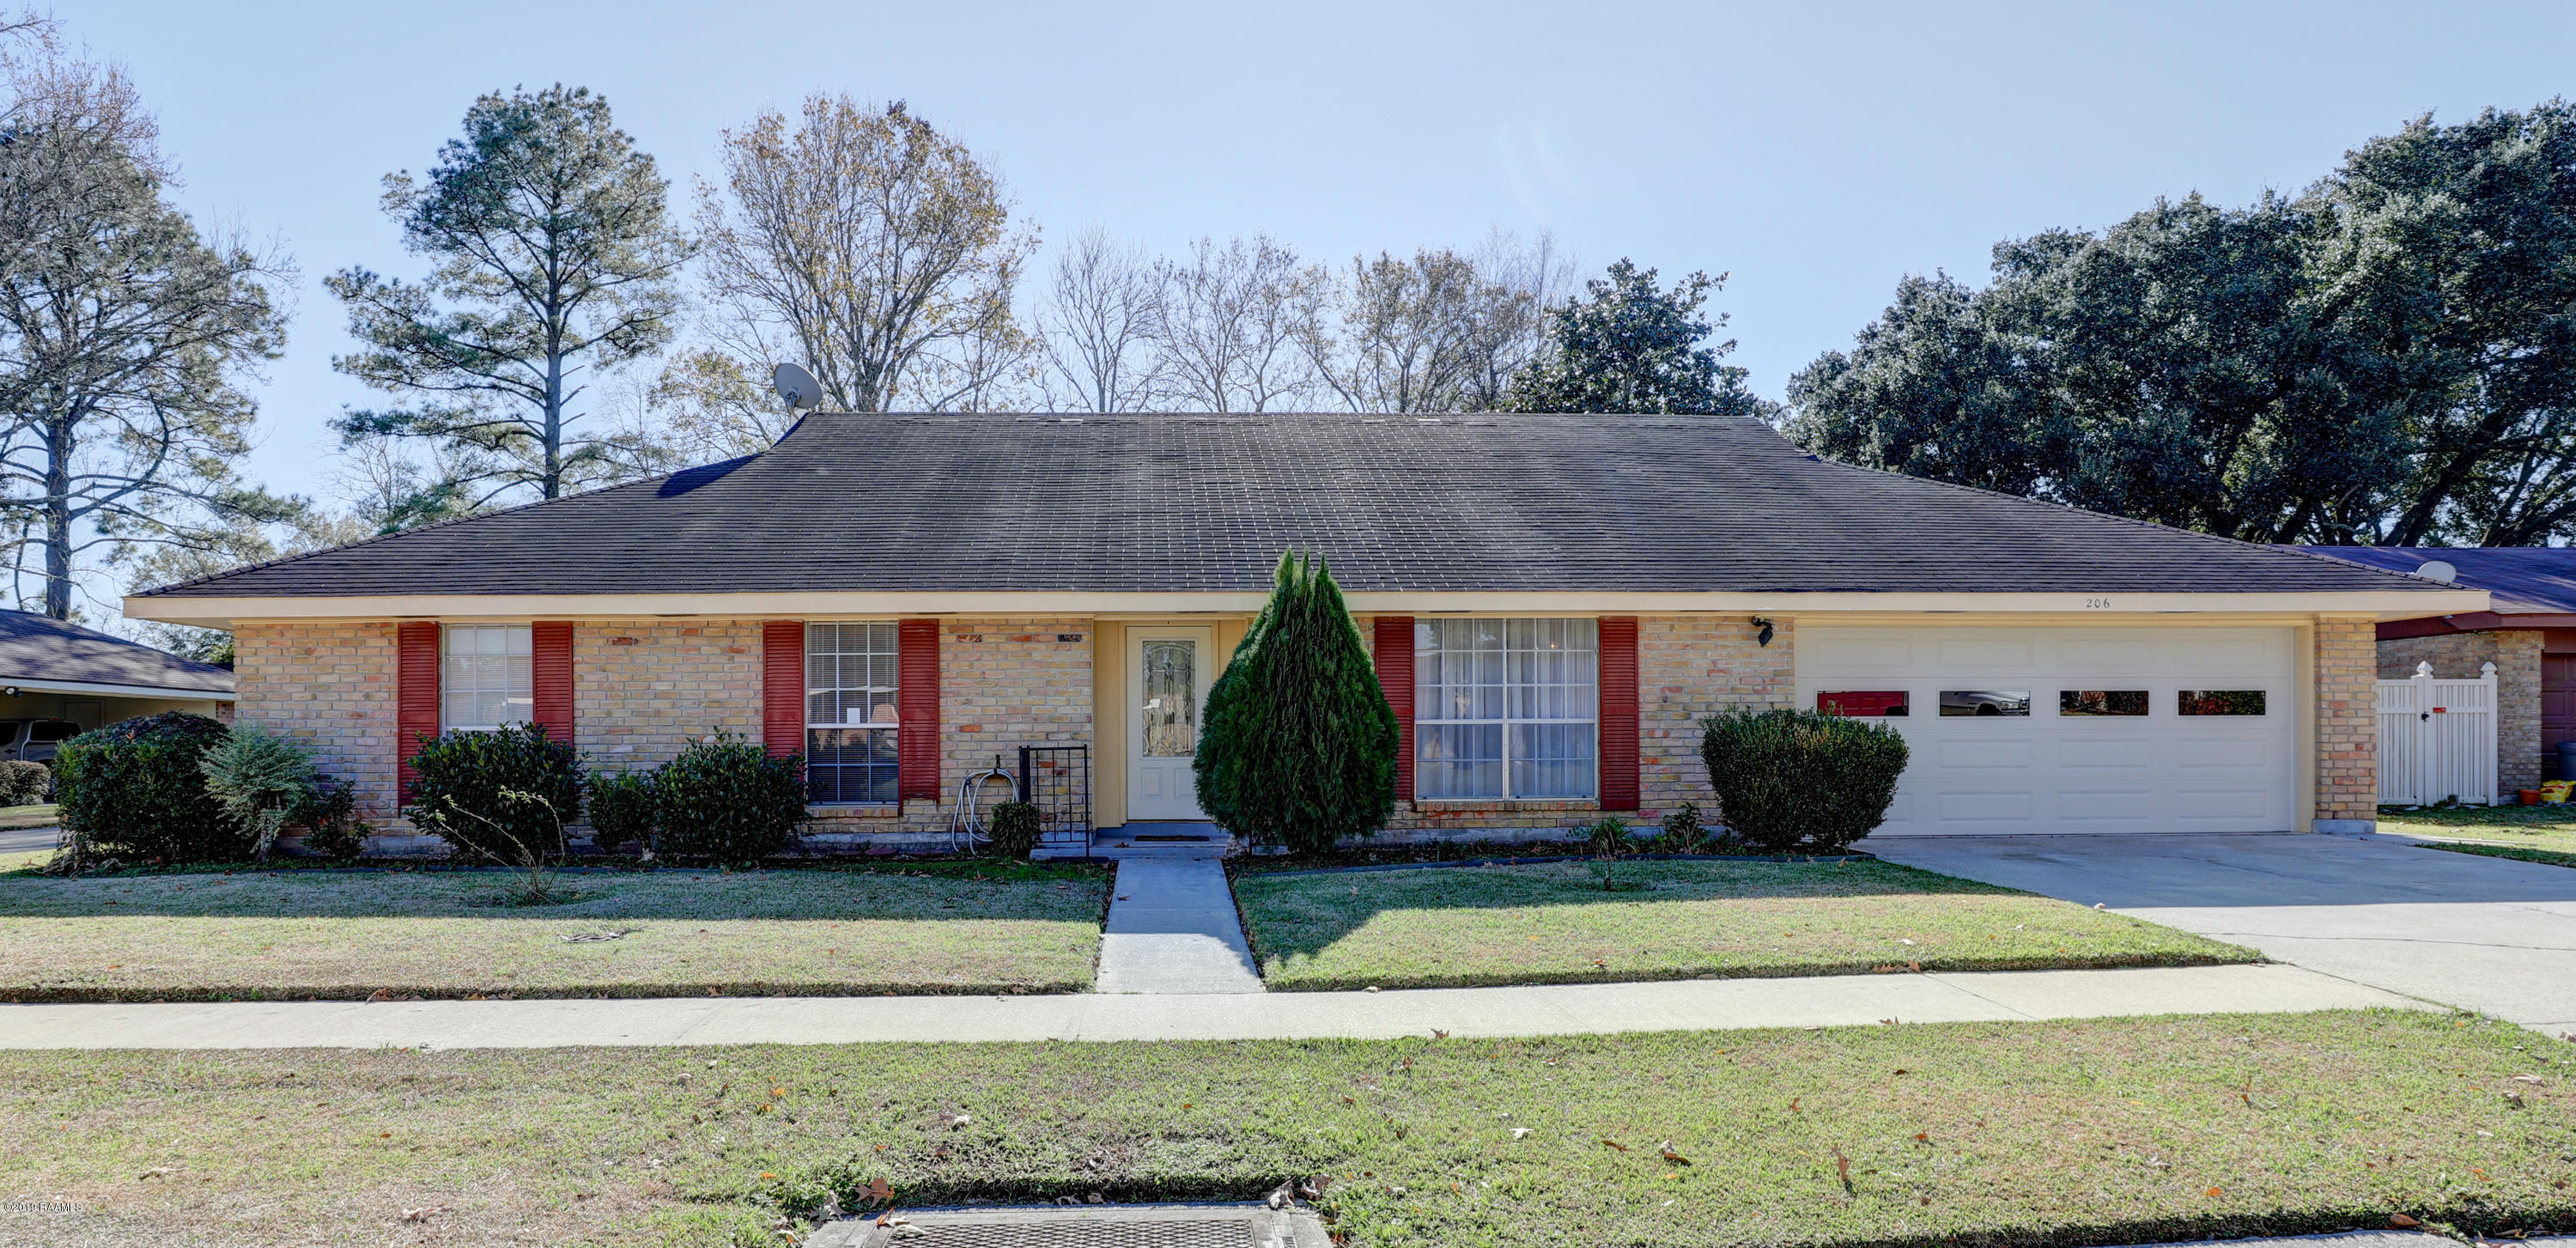 206 Persimmon Place, Lafayette, LA 70507 Photo #1